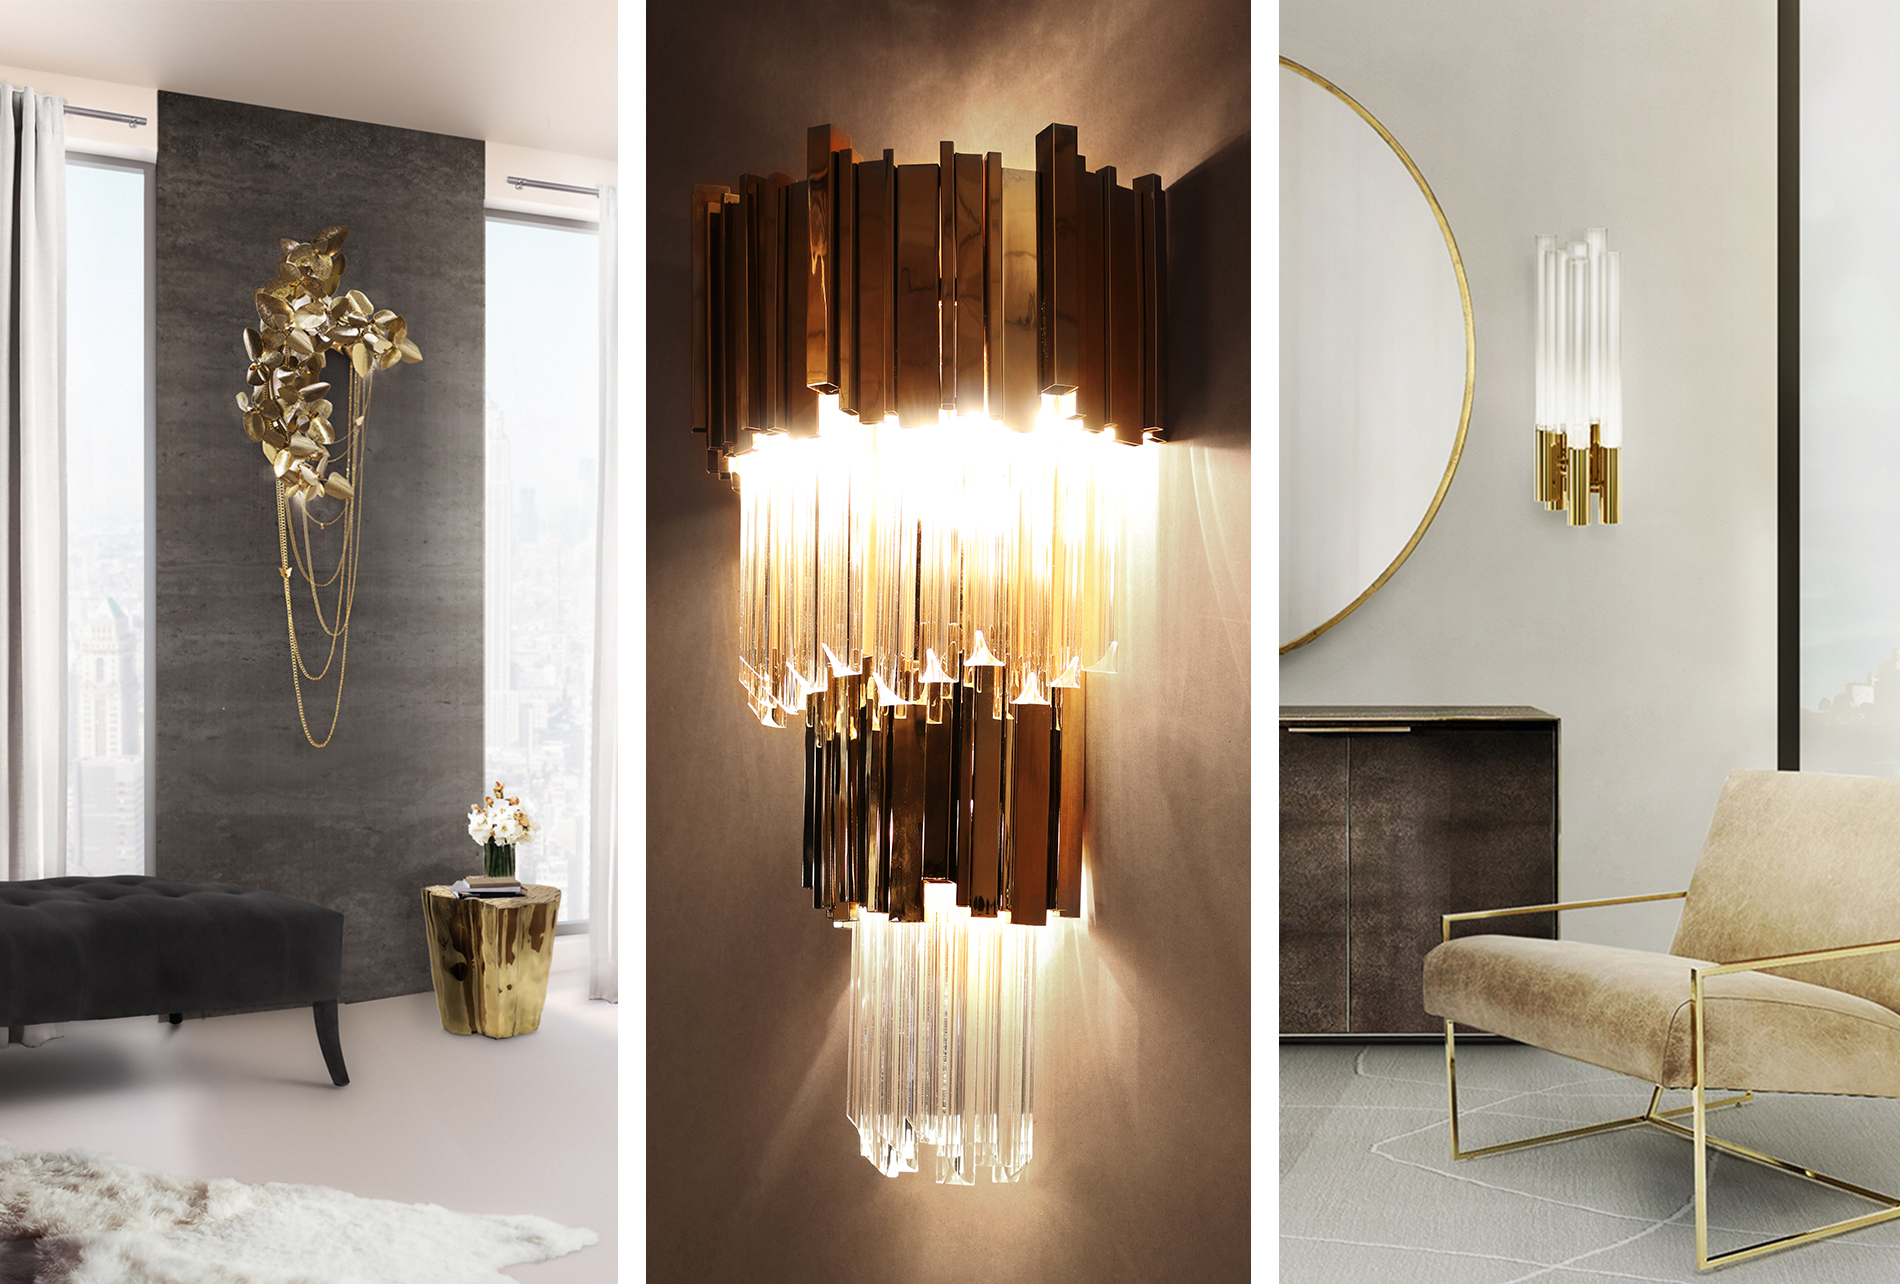 Luxury design: wall lights by Luxxu to create a glamorous decor